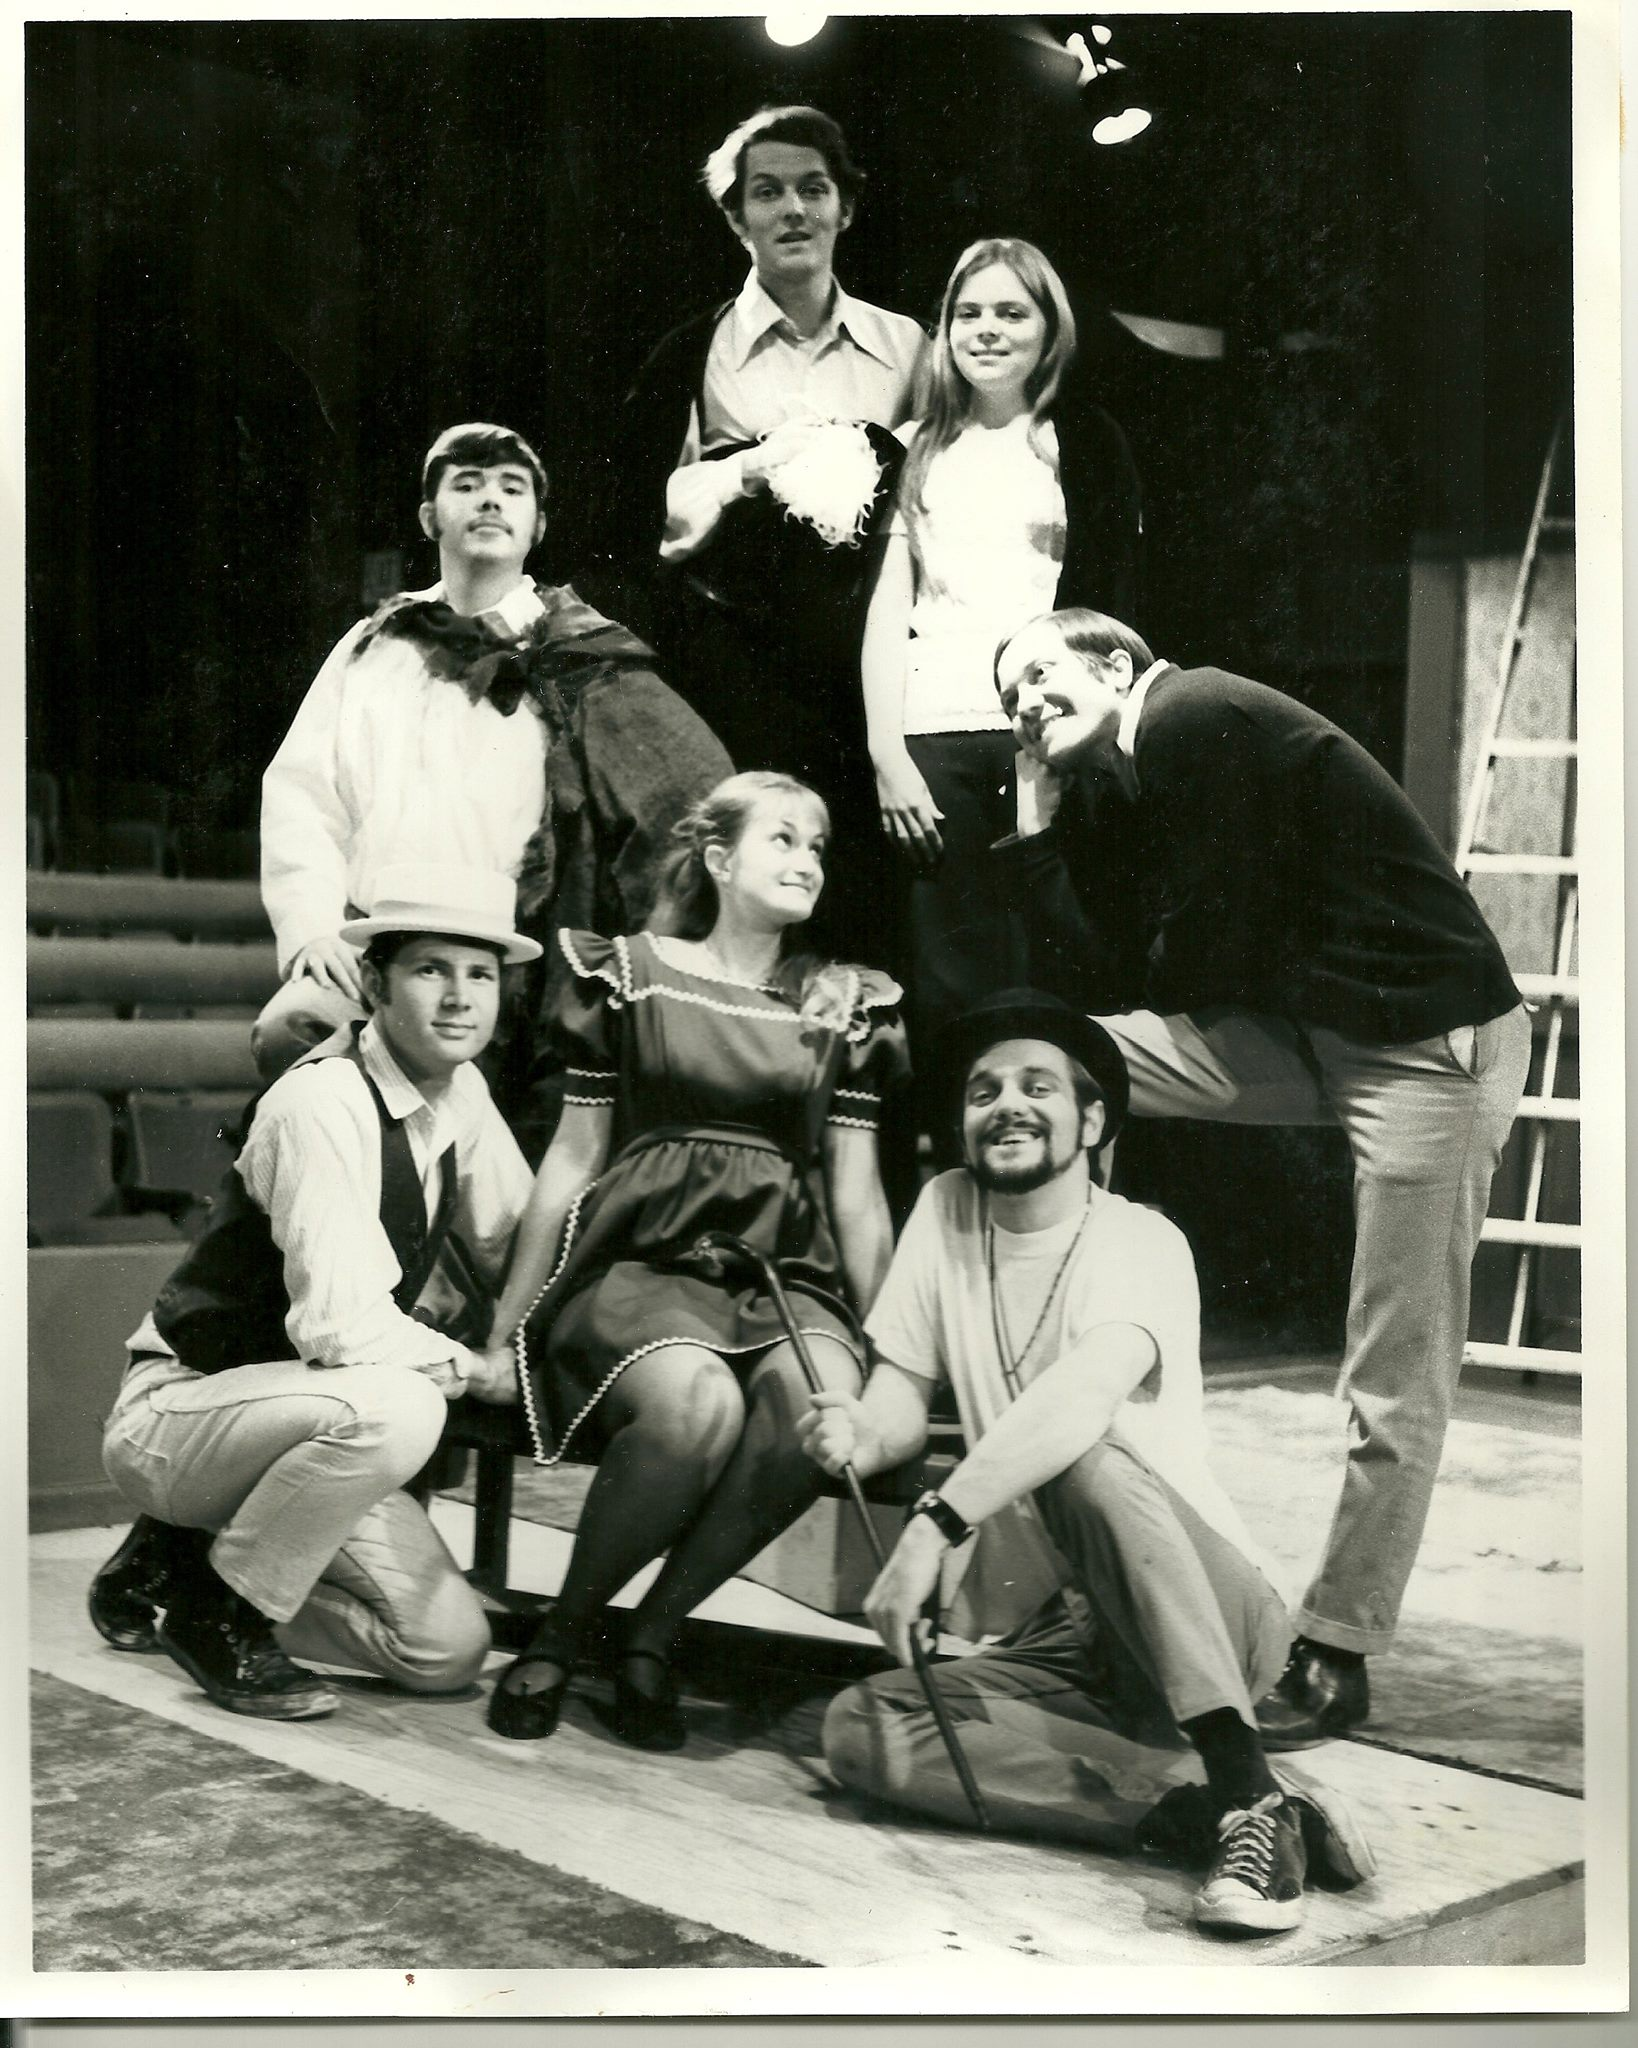 Here's another photograph from 'The Fantasticks.'